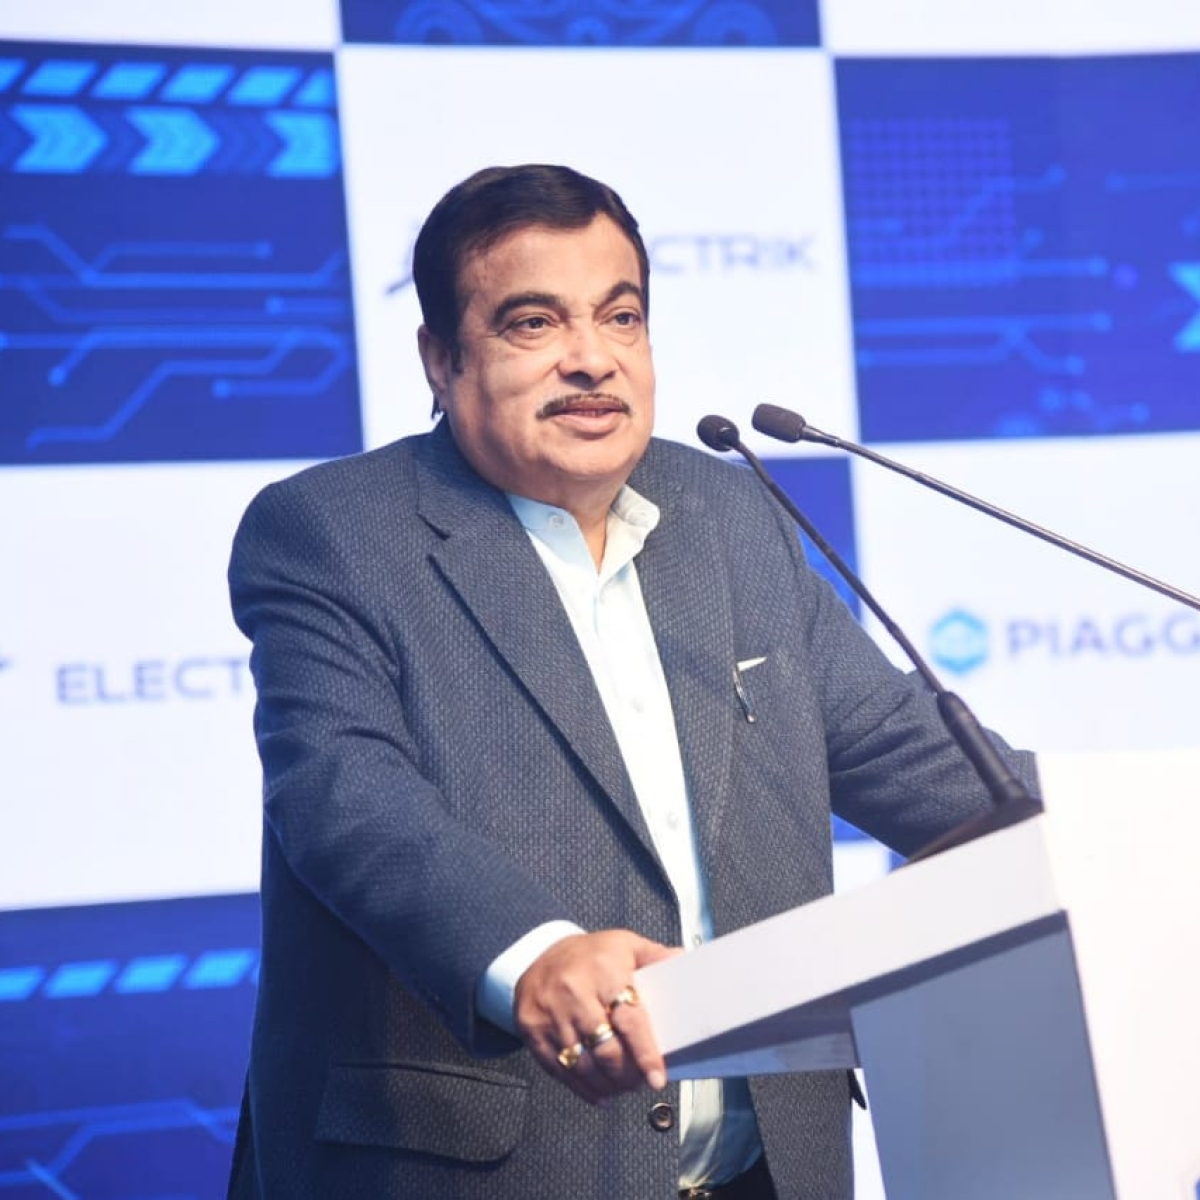 No dearth of money, plan to spend Rs 5L cr on infra: Nitin Gadkari